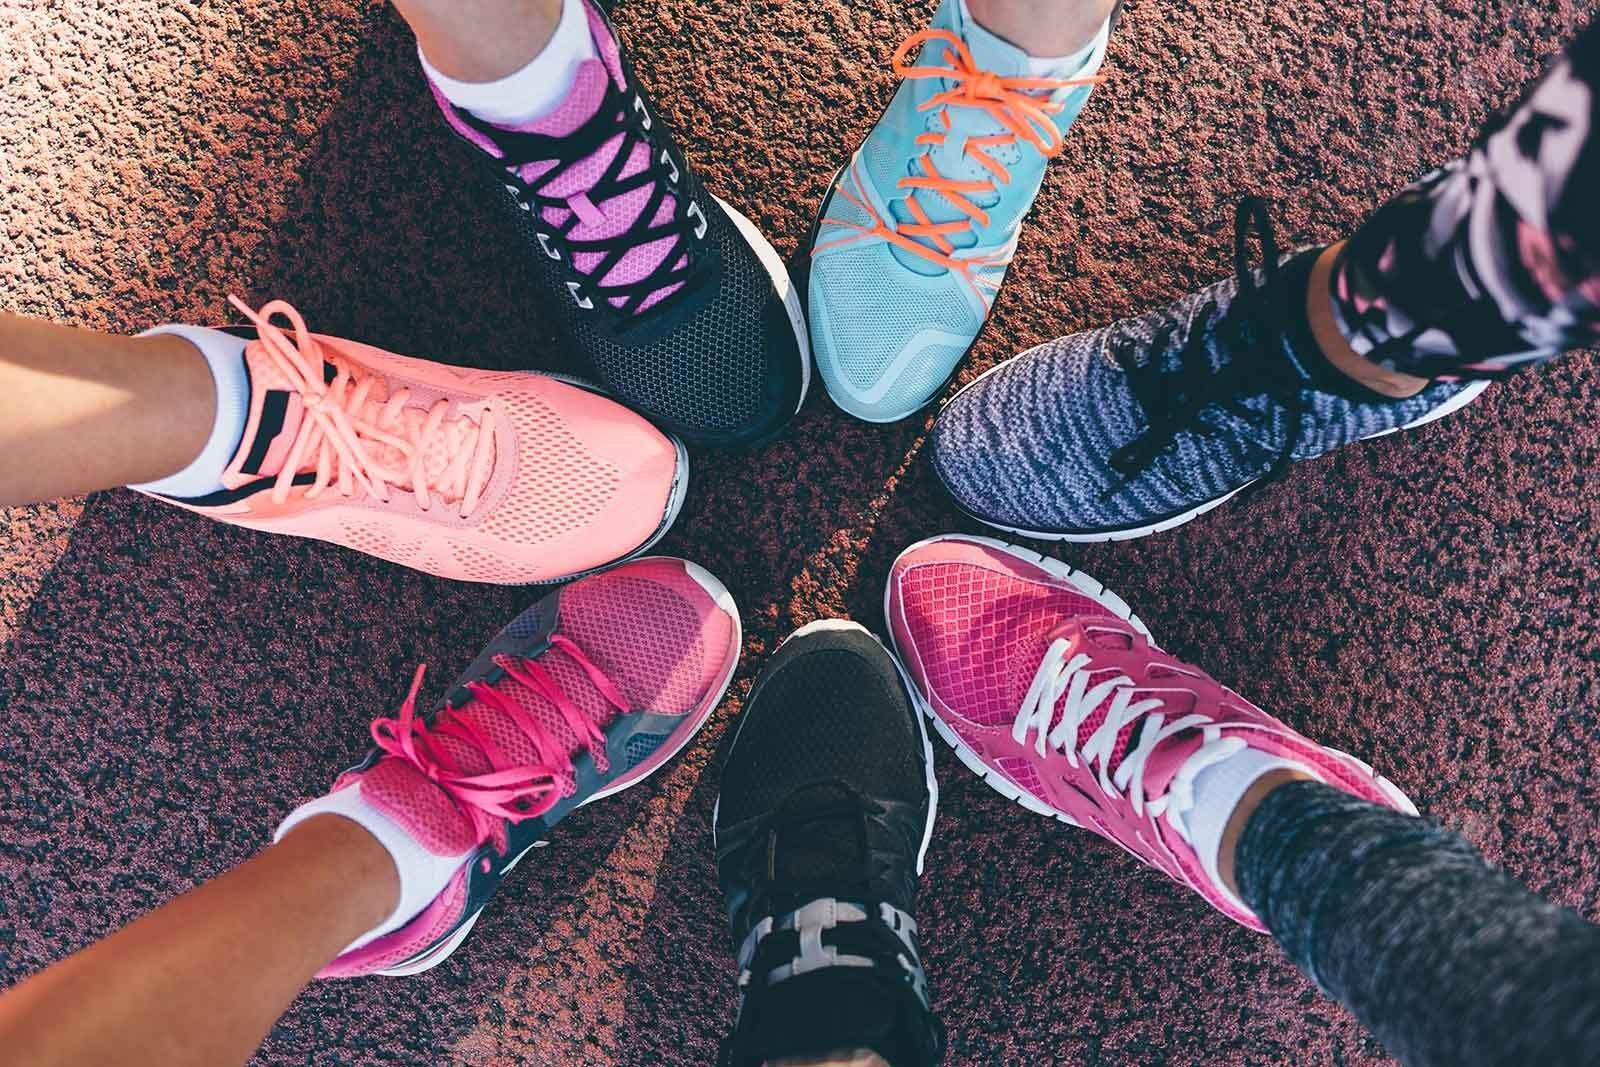 How Does Diabetes Affect Your Feet?